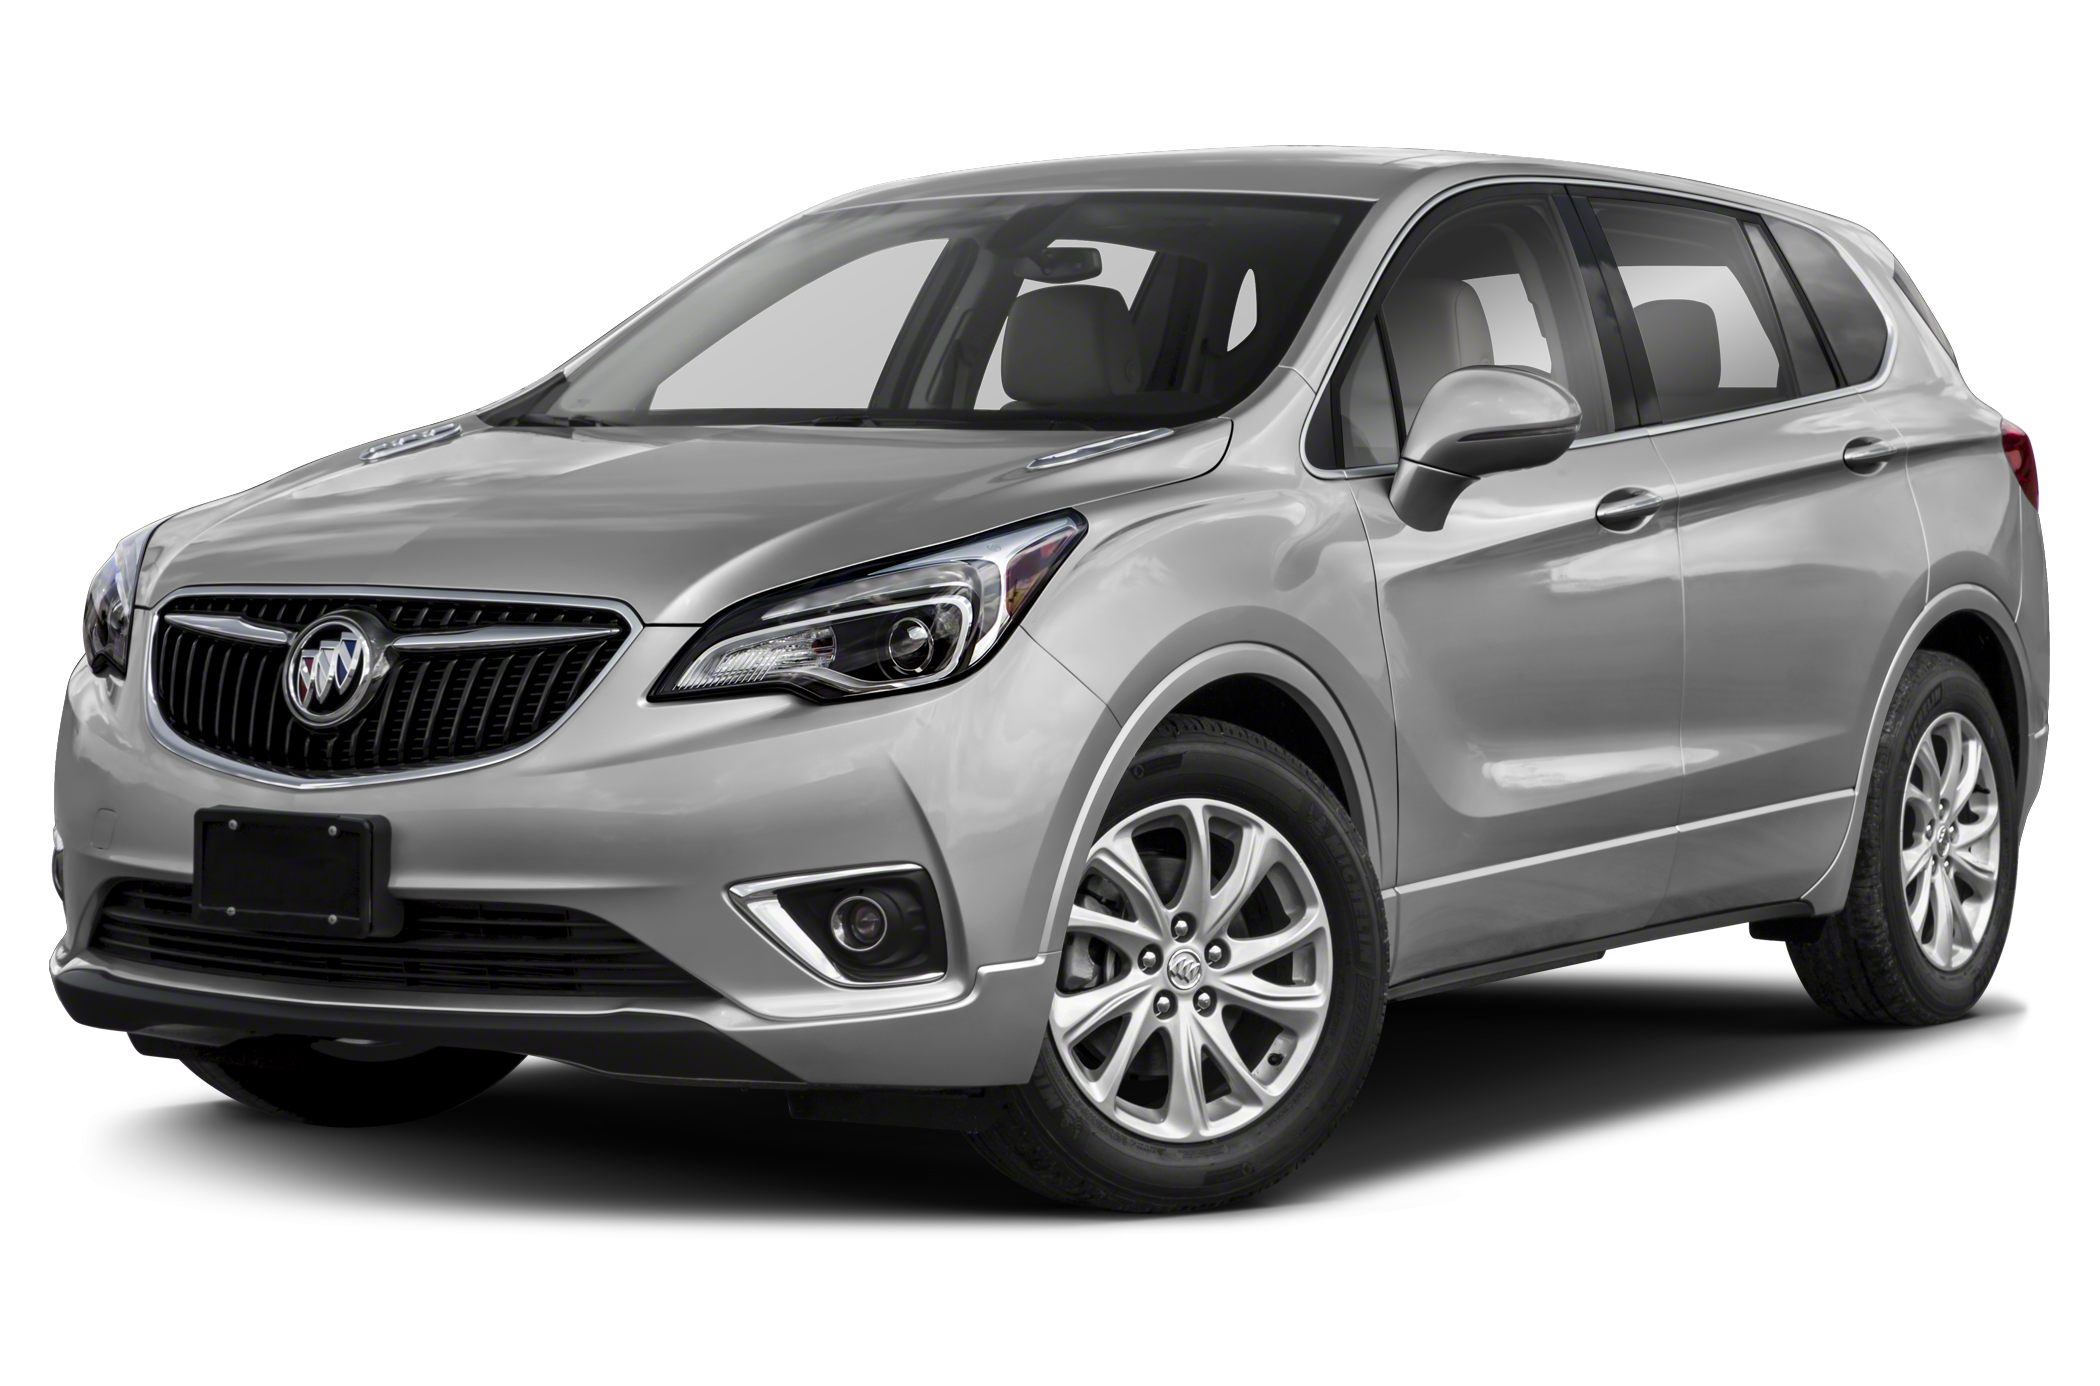 2020 Buick Envision Specs And Prices 2021 Buick Envision Lease, Trim Levels, Msrp